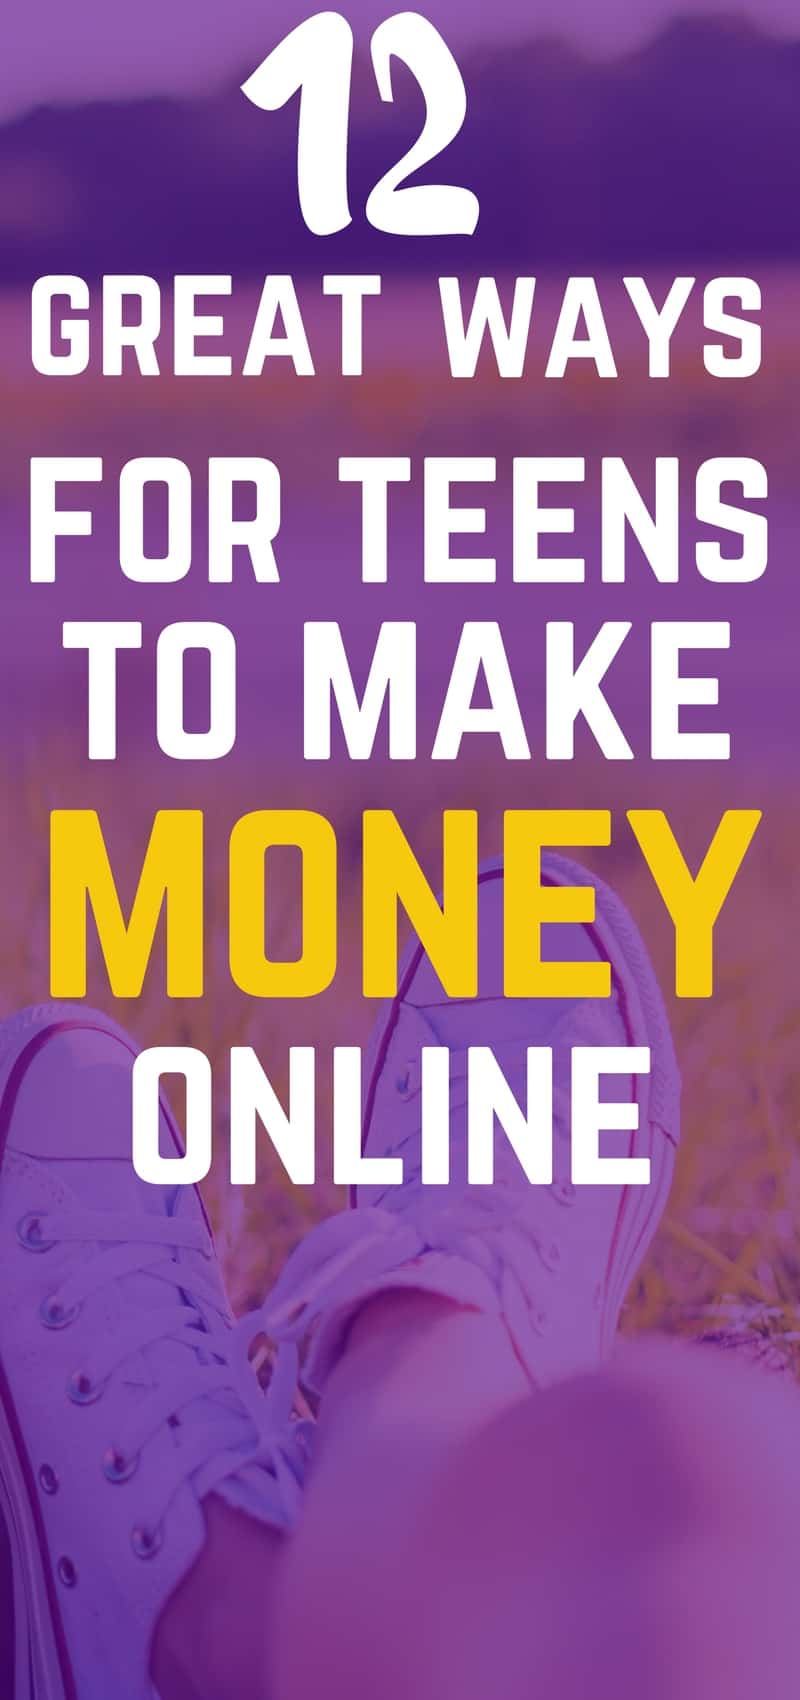 12 great ways for teens to make money online. Check them out now so that you can make some extra cash!